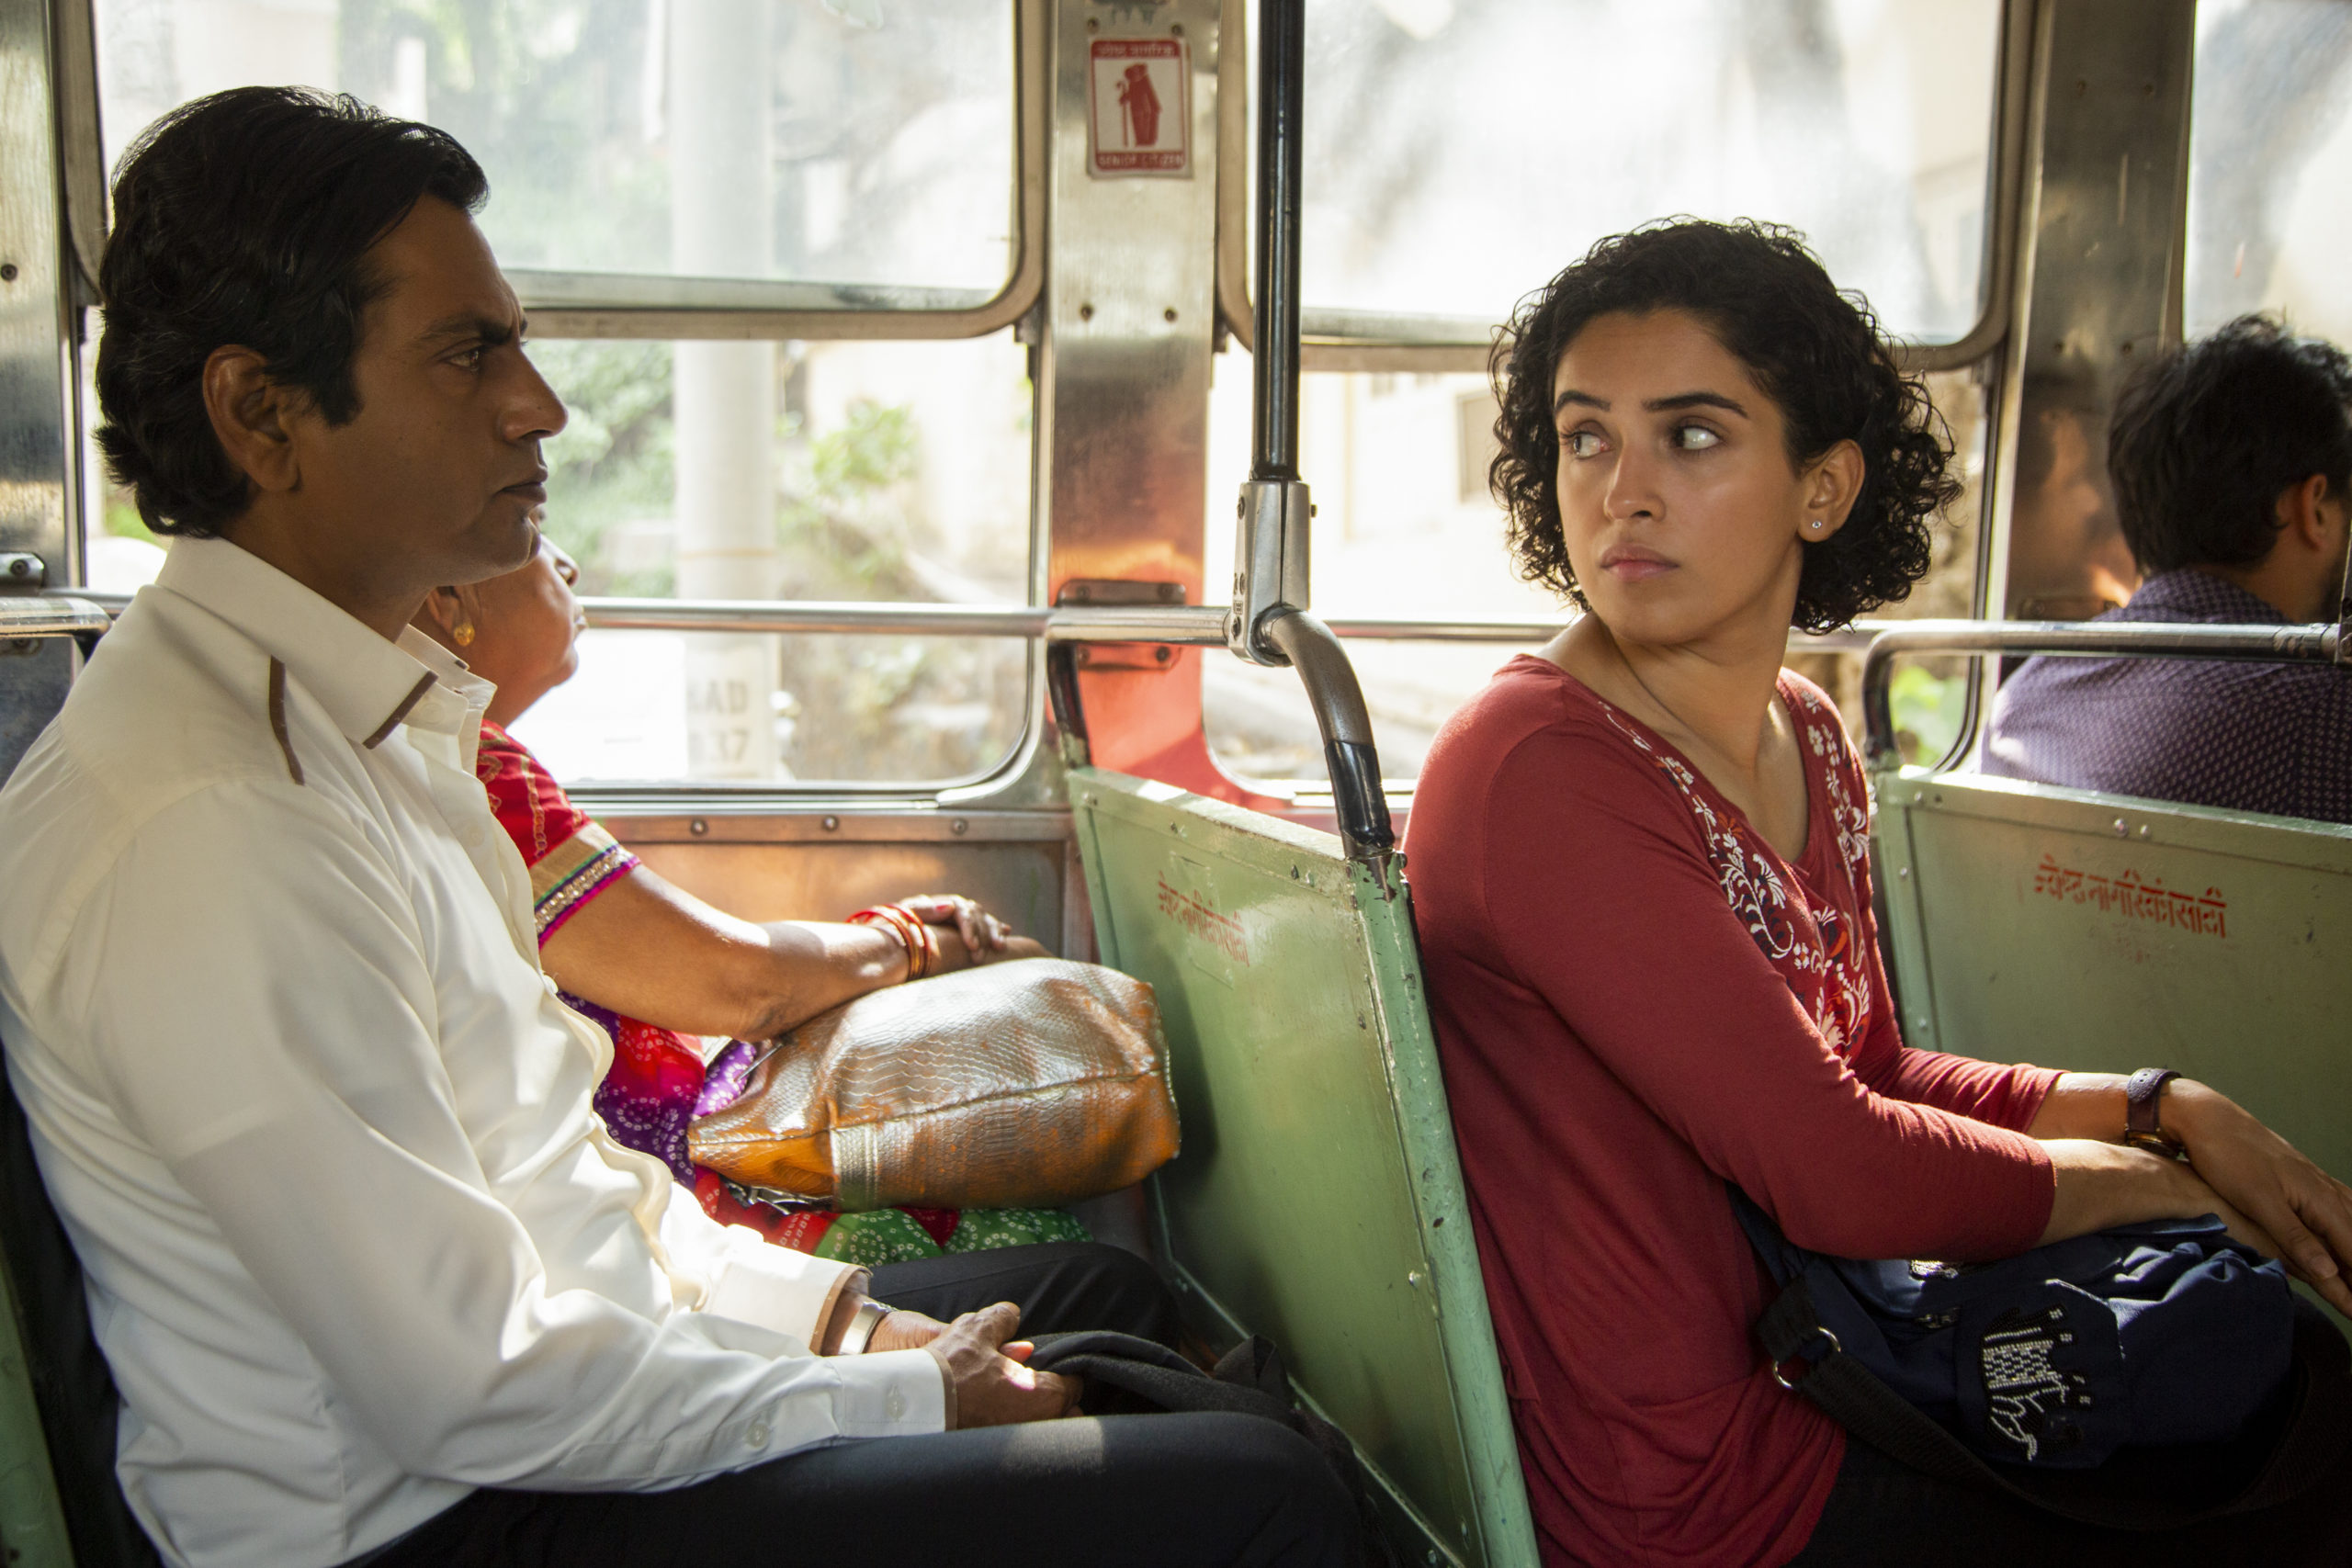 PHOTOGRAPH featuring Nawazuddin Siddiqui and Sanya Malhotra courtesy of Amazon Studios.